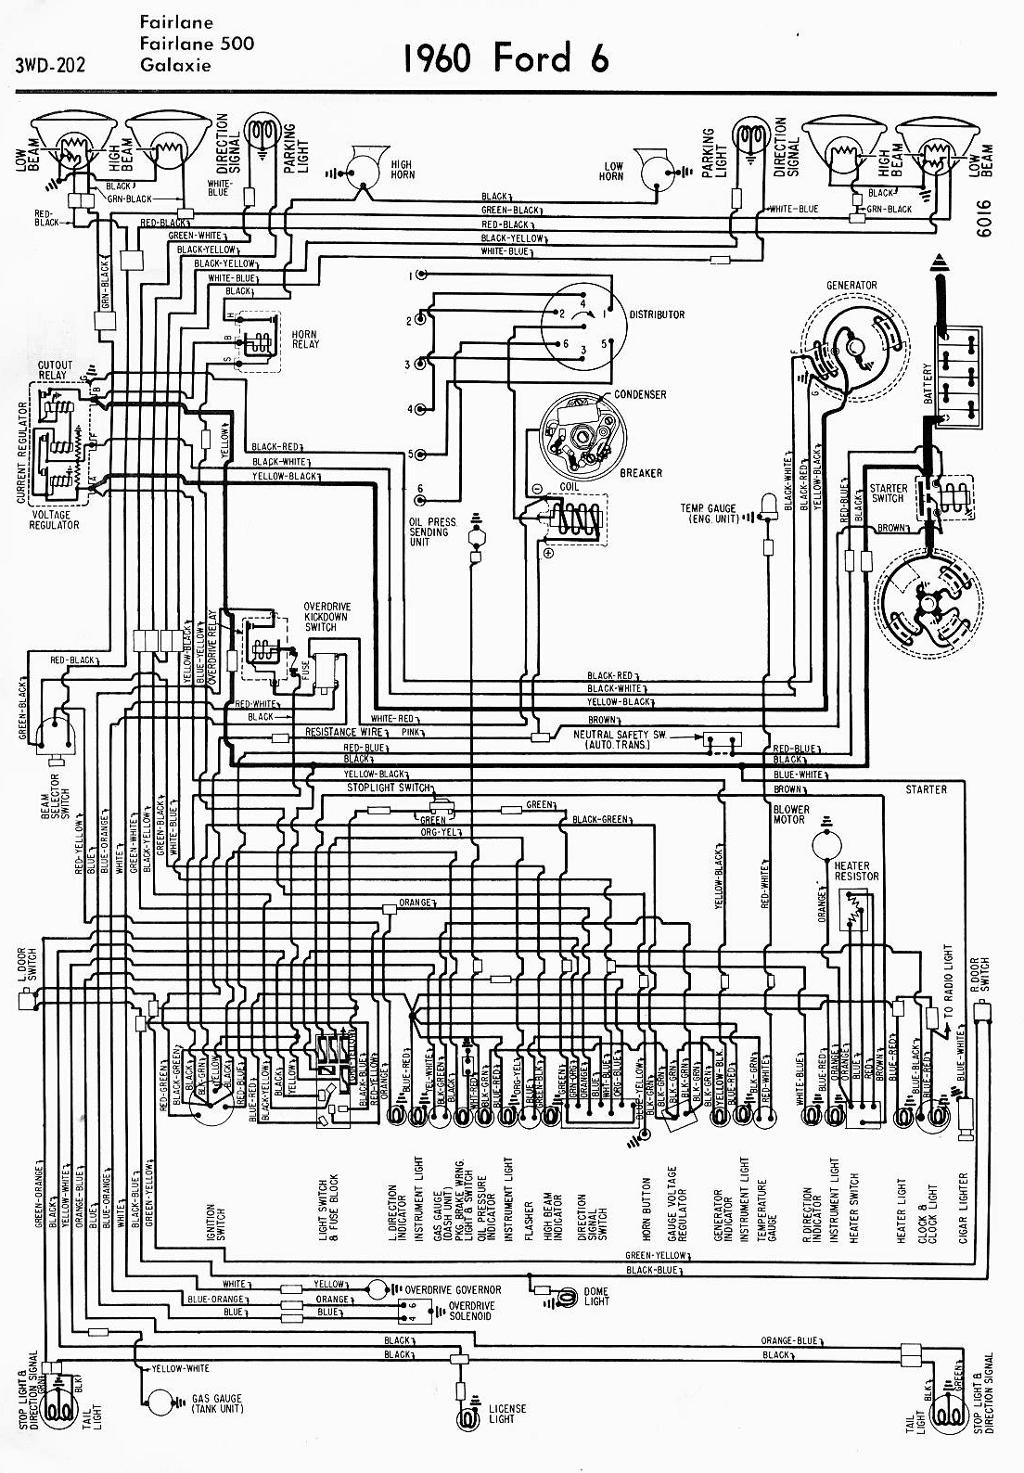 1960 Ford Pickup Wiring Diagram Free Picture - Wiring Diagram ground-centre  - ground-centre.quasifotografo.it [ 1473 x 1024 Pixel ]